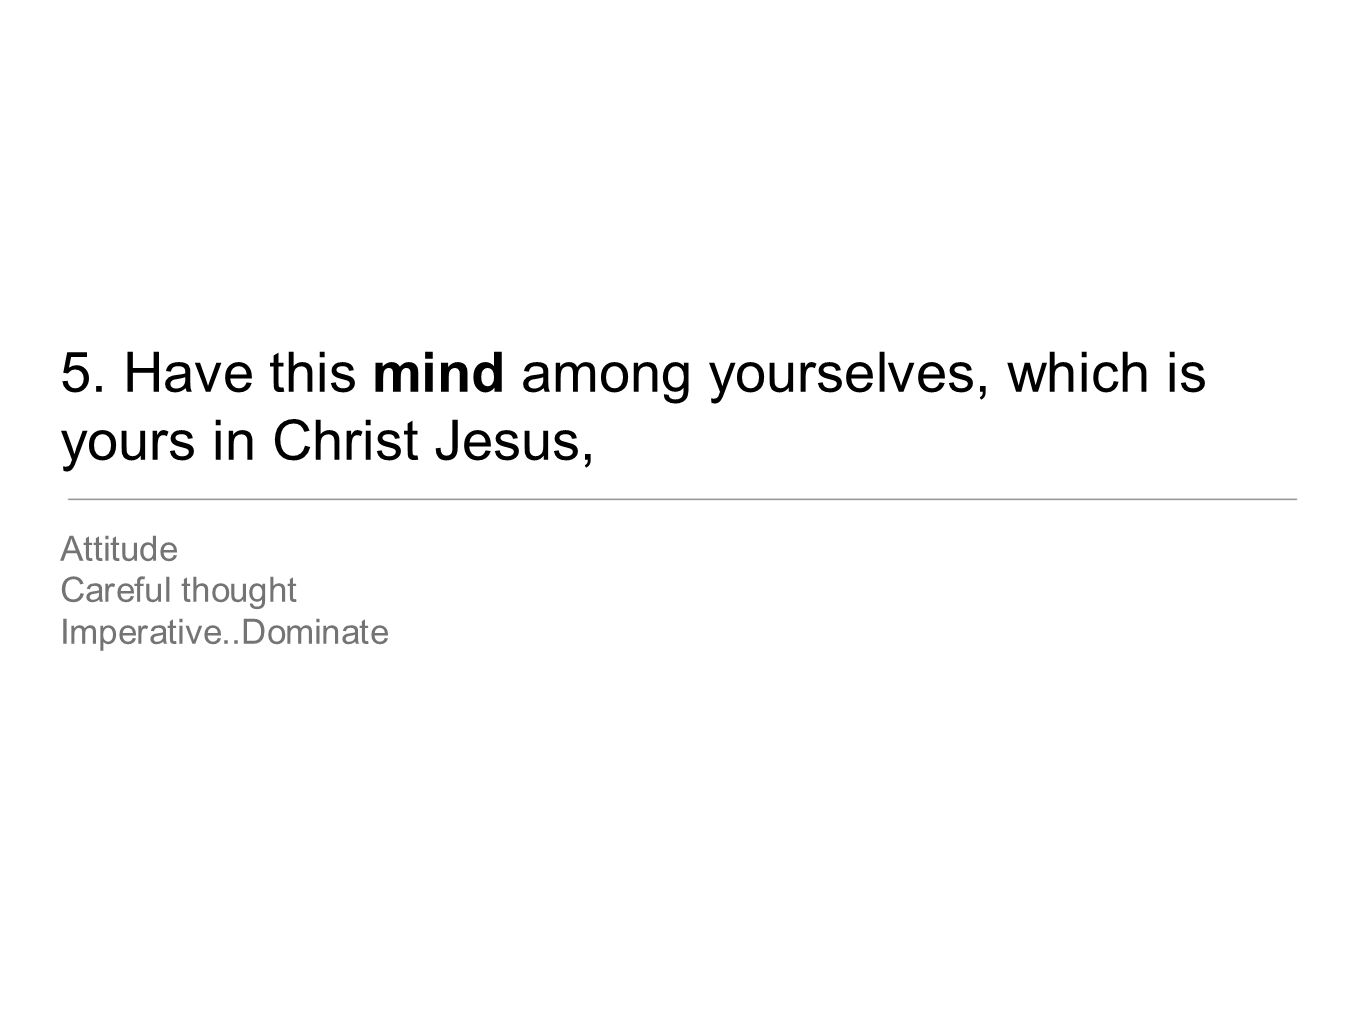 5. Have this mind among yourselves, which is yours in Christ Jesus, Attitude Careful thought Imperative..Dominate